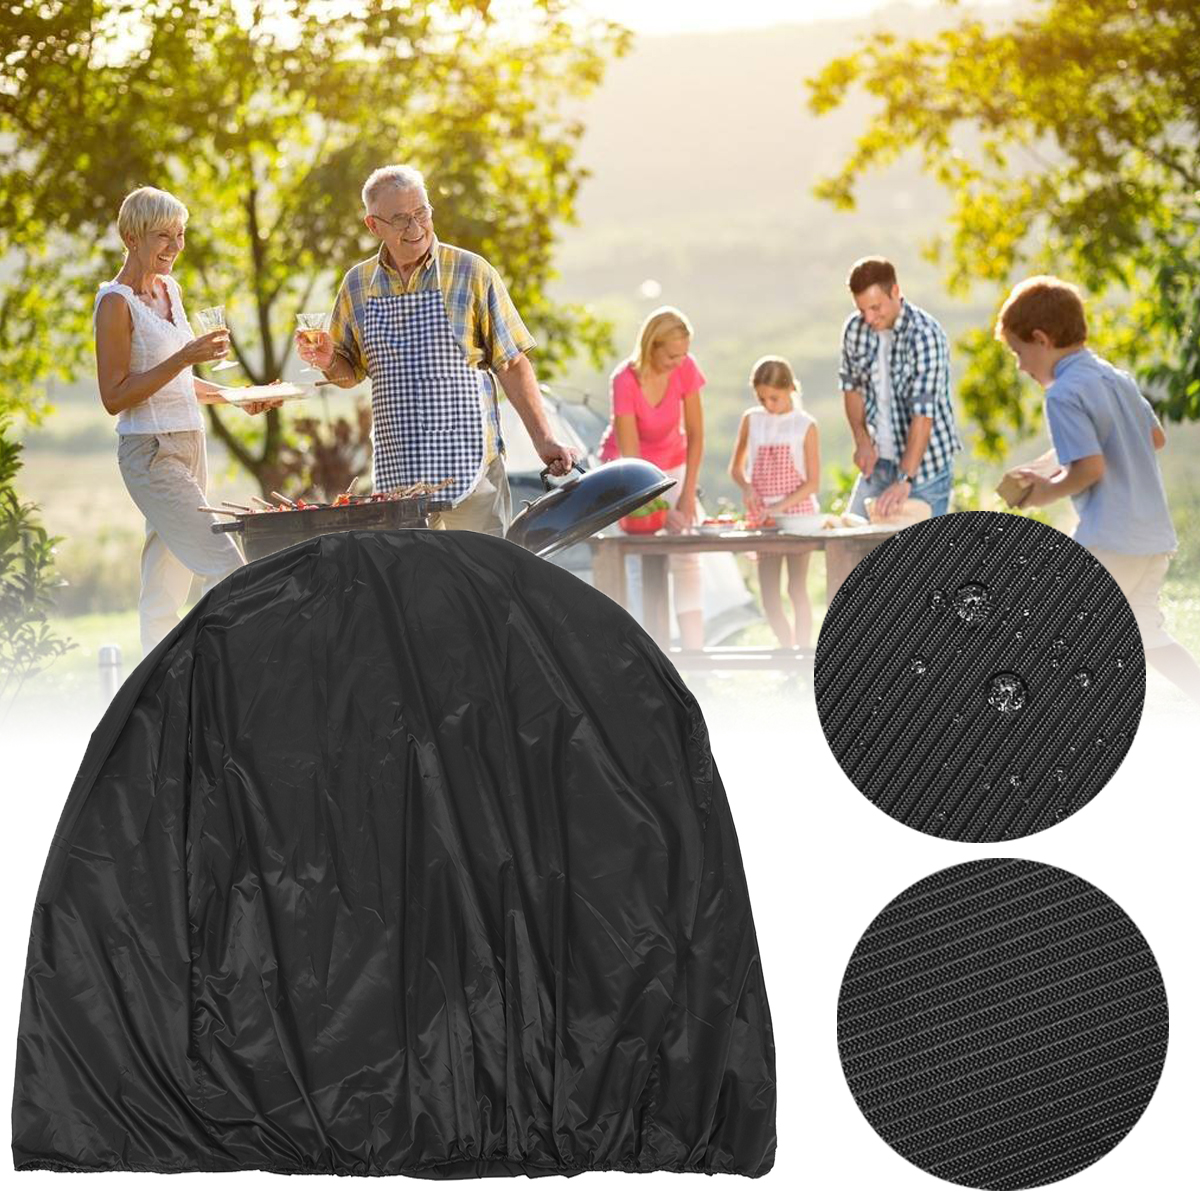 134x64.7x149.3cm BBQ Grill Cover Outdoor Camping Picnic